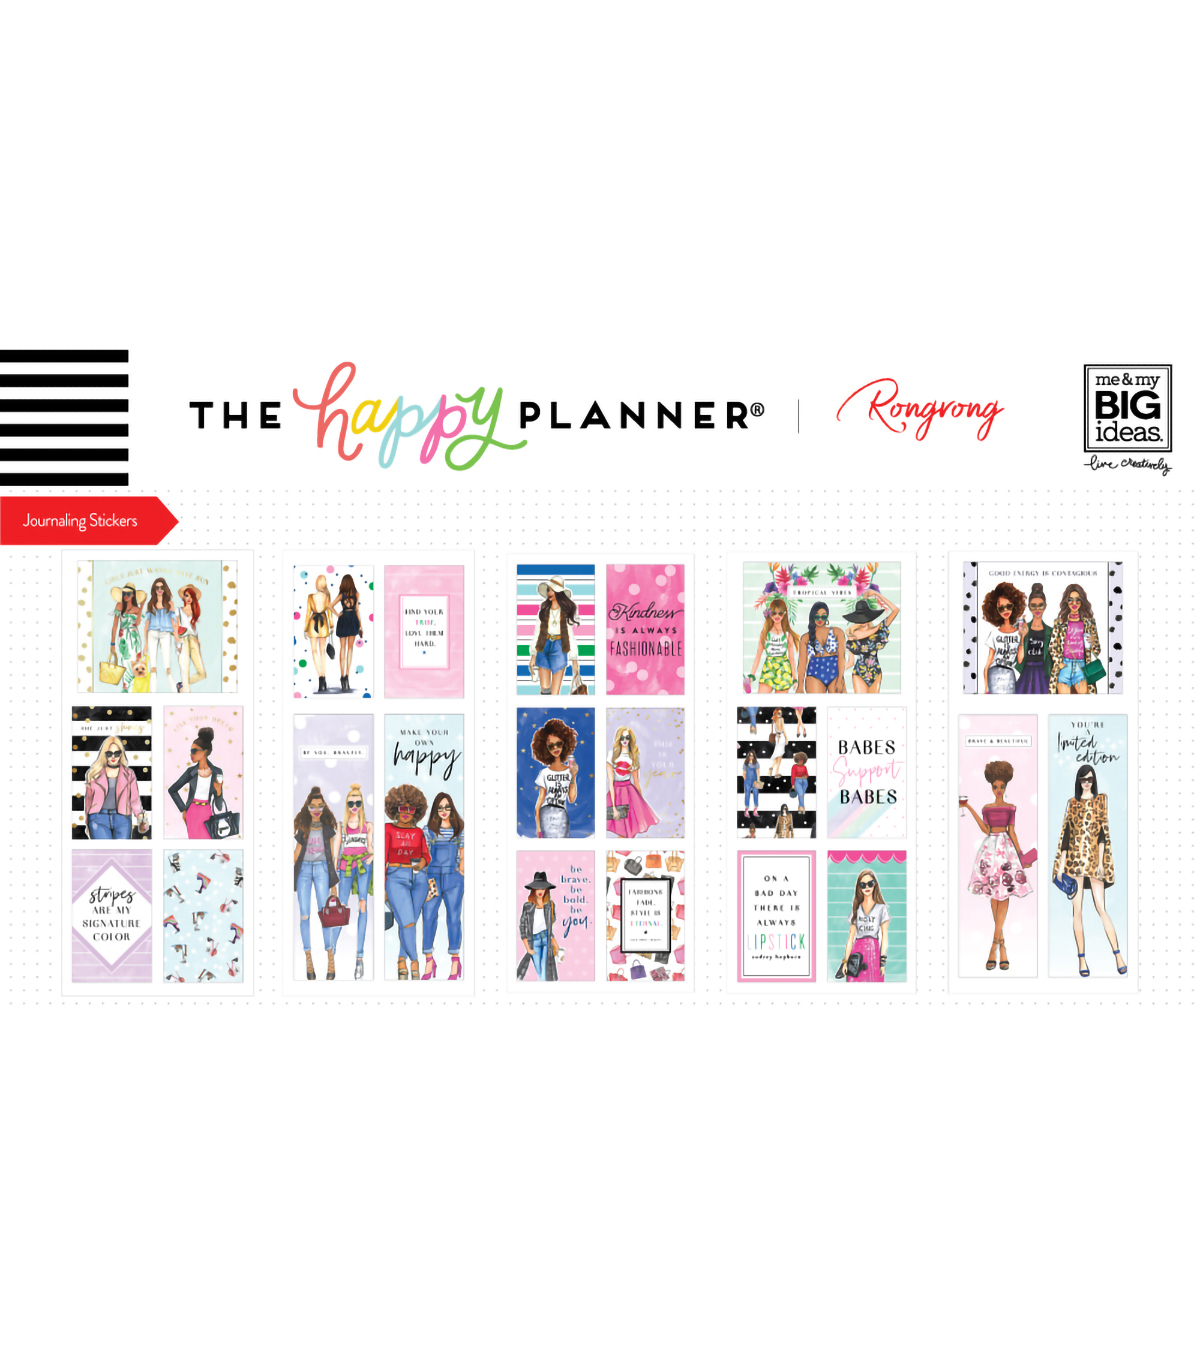 The Happy Planner x Rongrong Journaling Flip Stickers